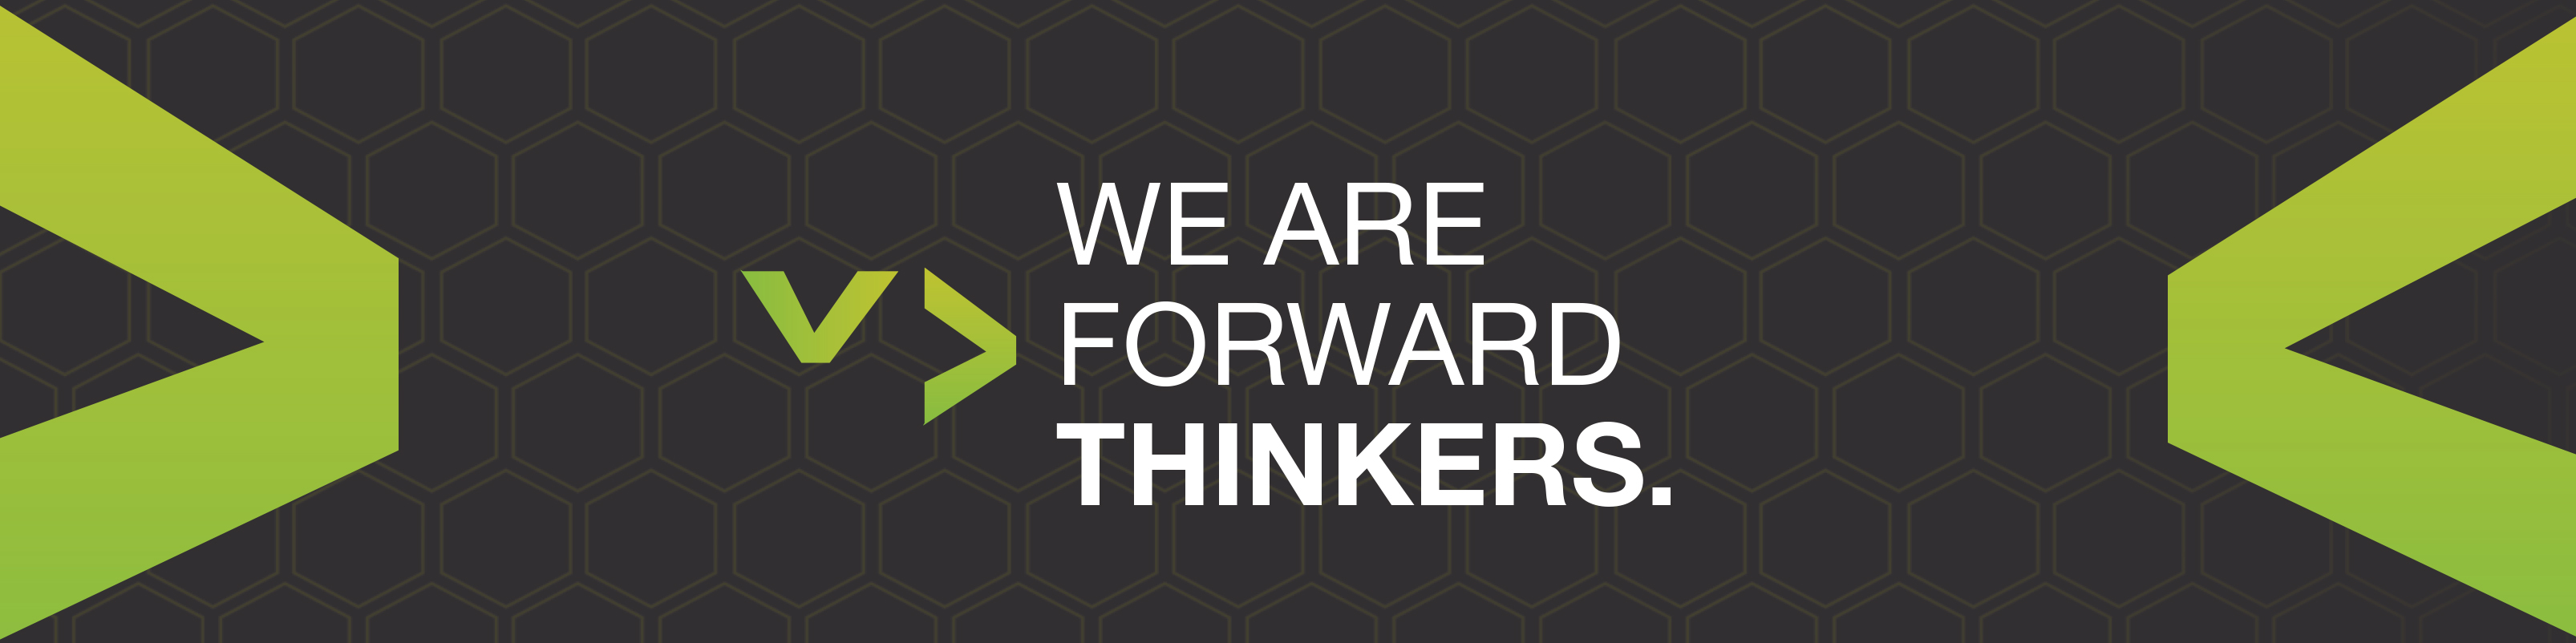 We are forward thinkers